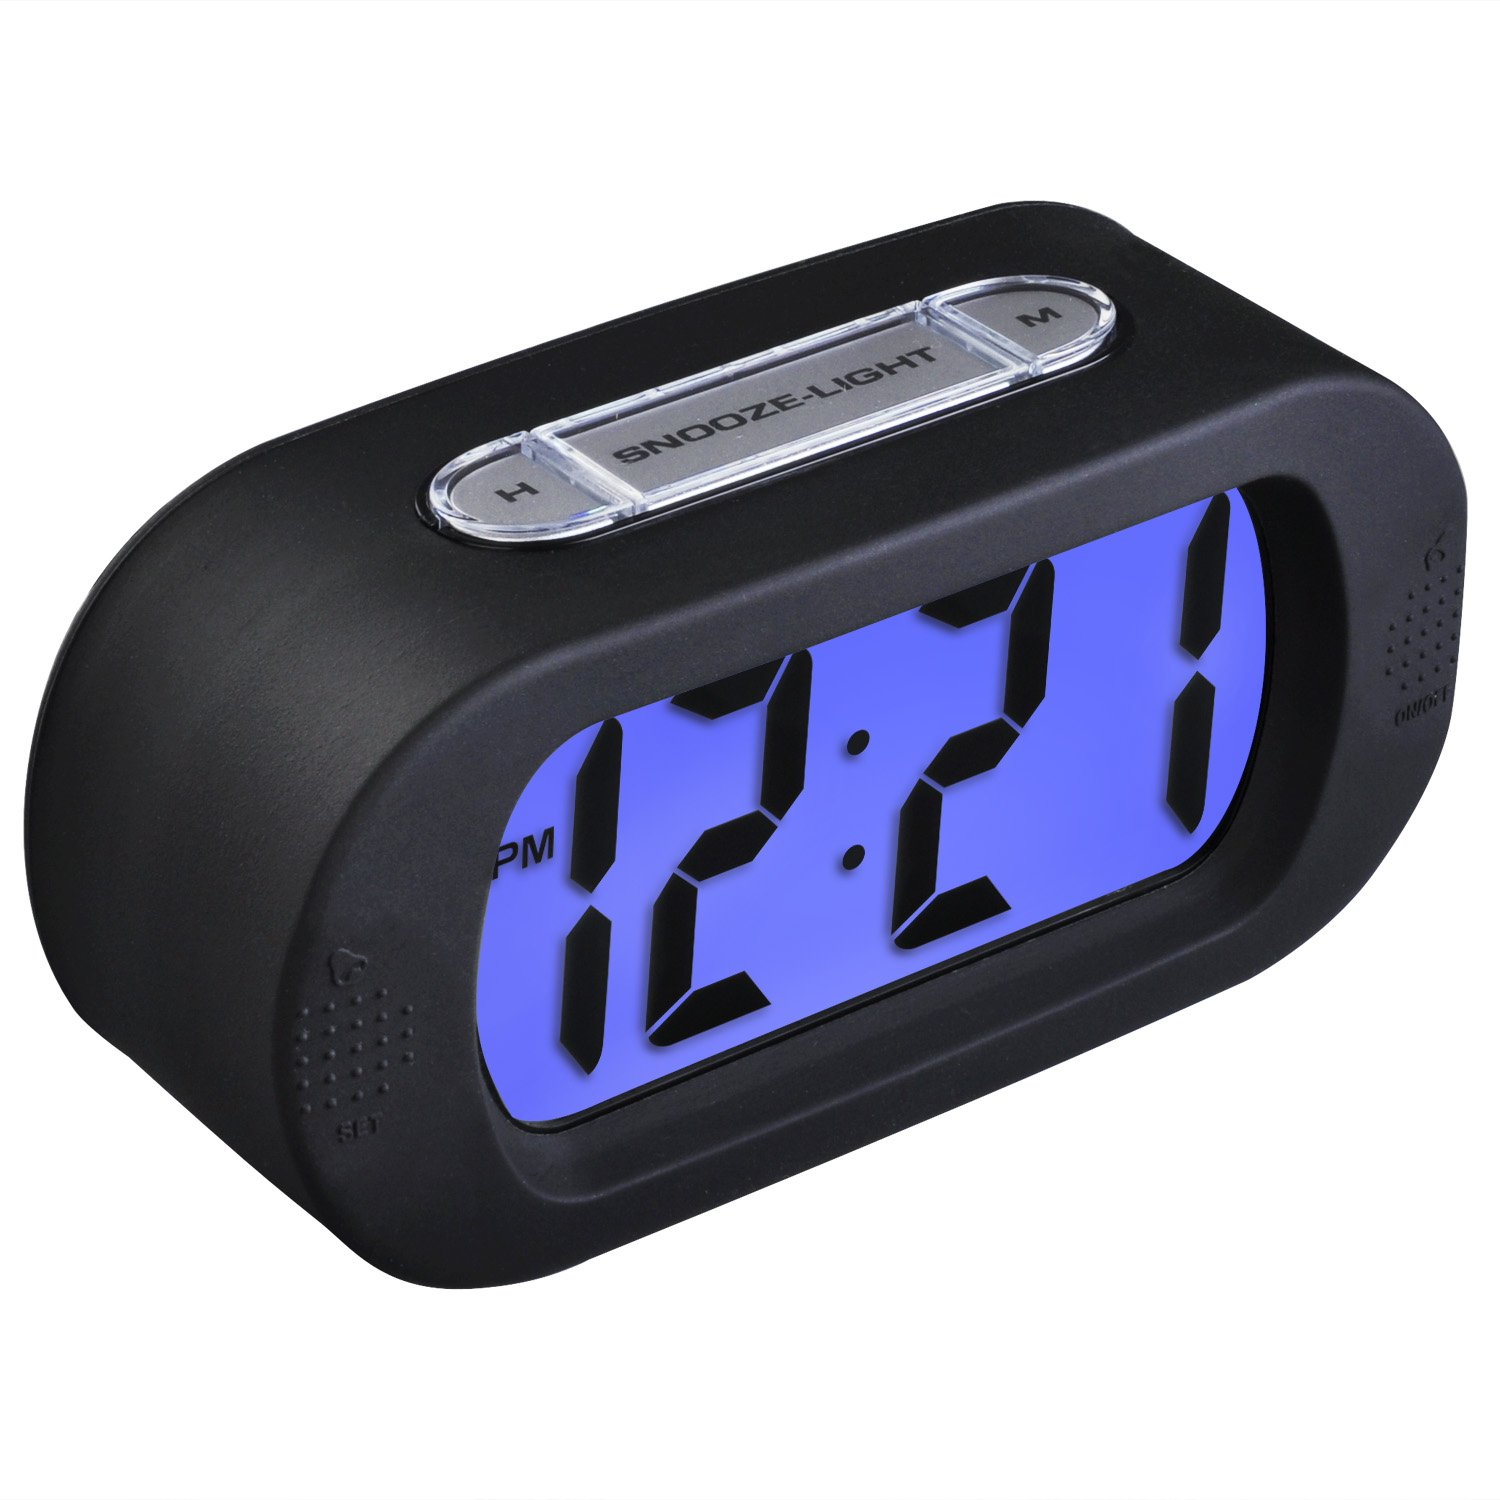 Boys Alarm Clock, Samshow Desk Clock, Travel Alarm Clock, Portable Clock, Simple Setting, Snooze Light, Shockproof, Large LED Screen, Progressively Louder Wake, Battery Powered included (Black)